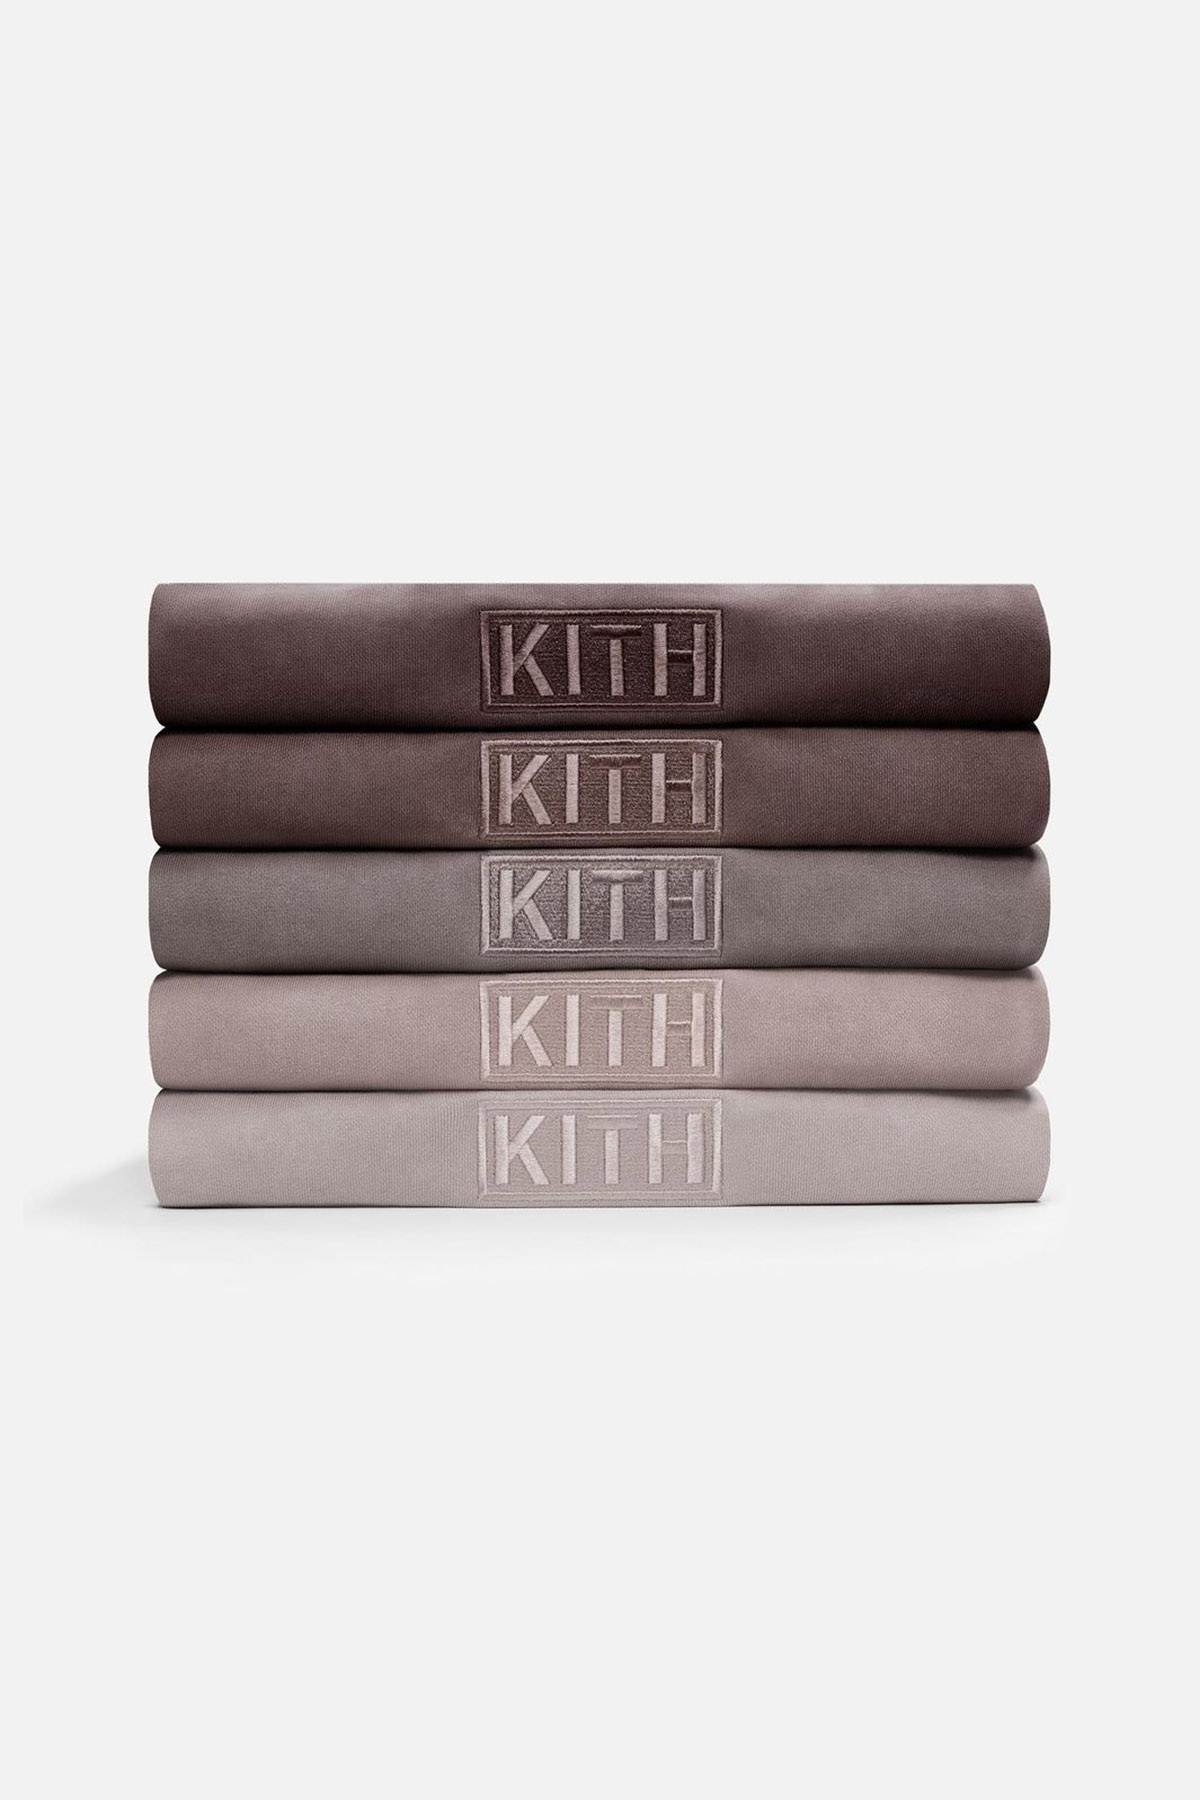 KITH 30 color Hoodie The Palette special Collection